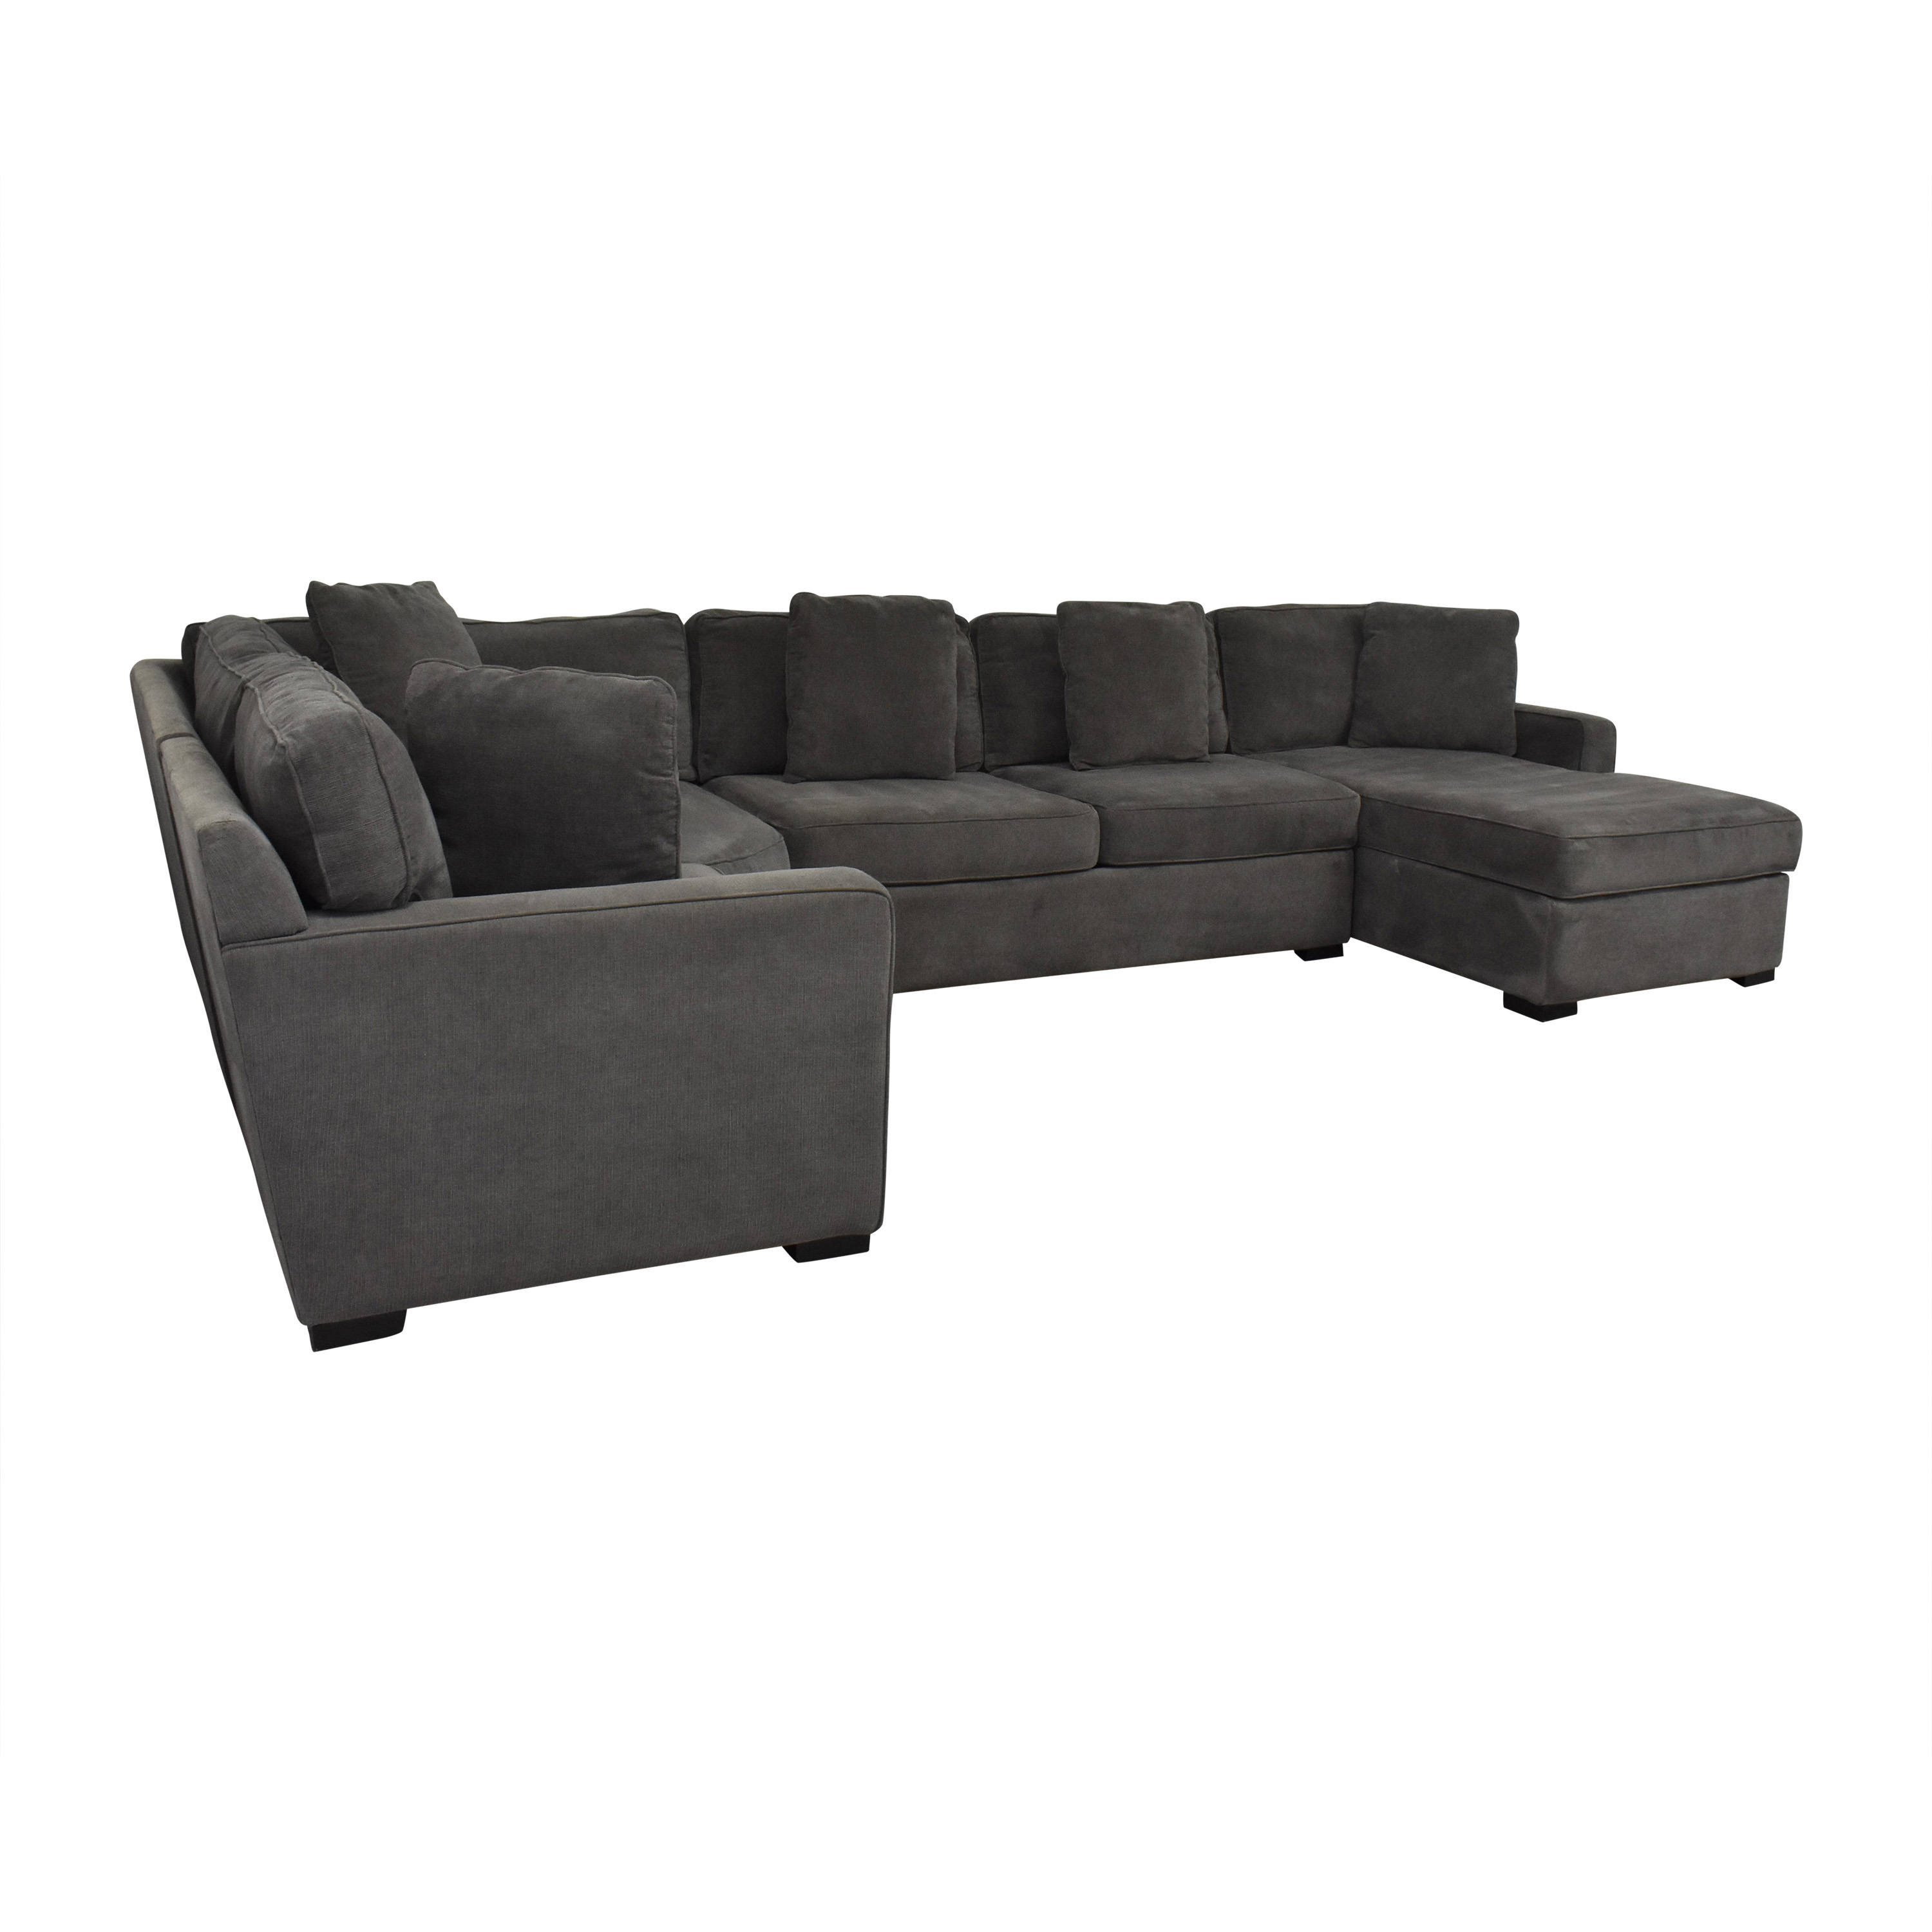 Macy's Macy's Radley Sectional Sofa with Chaise coupon